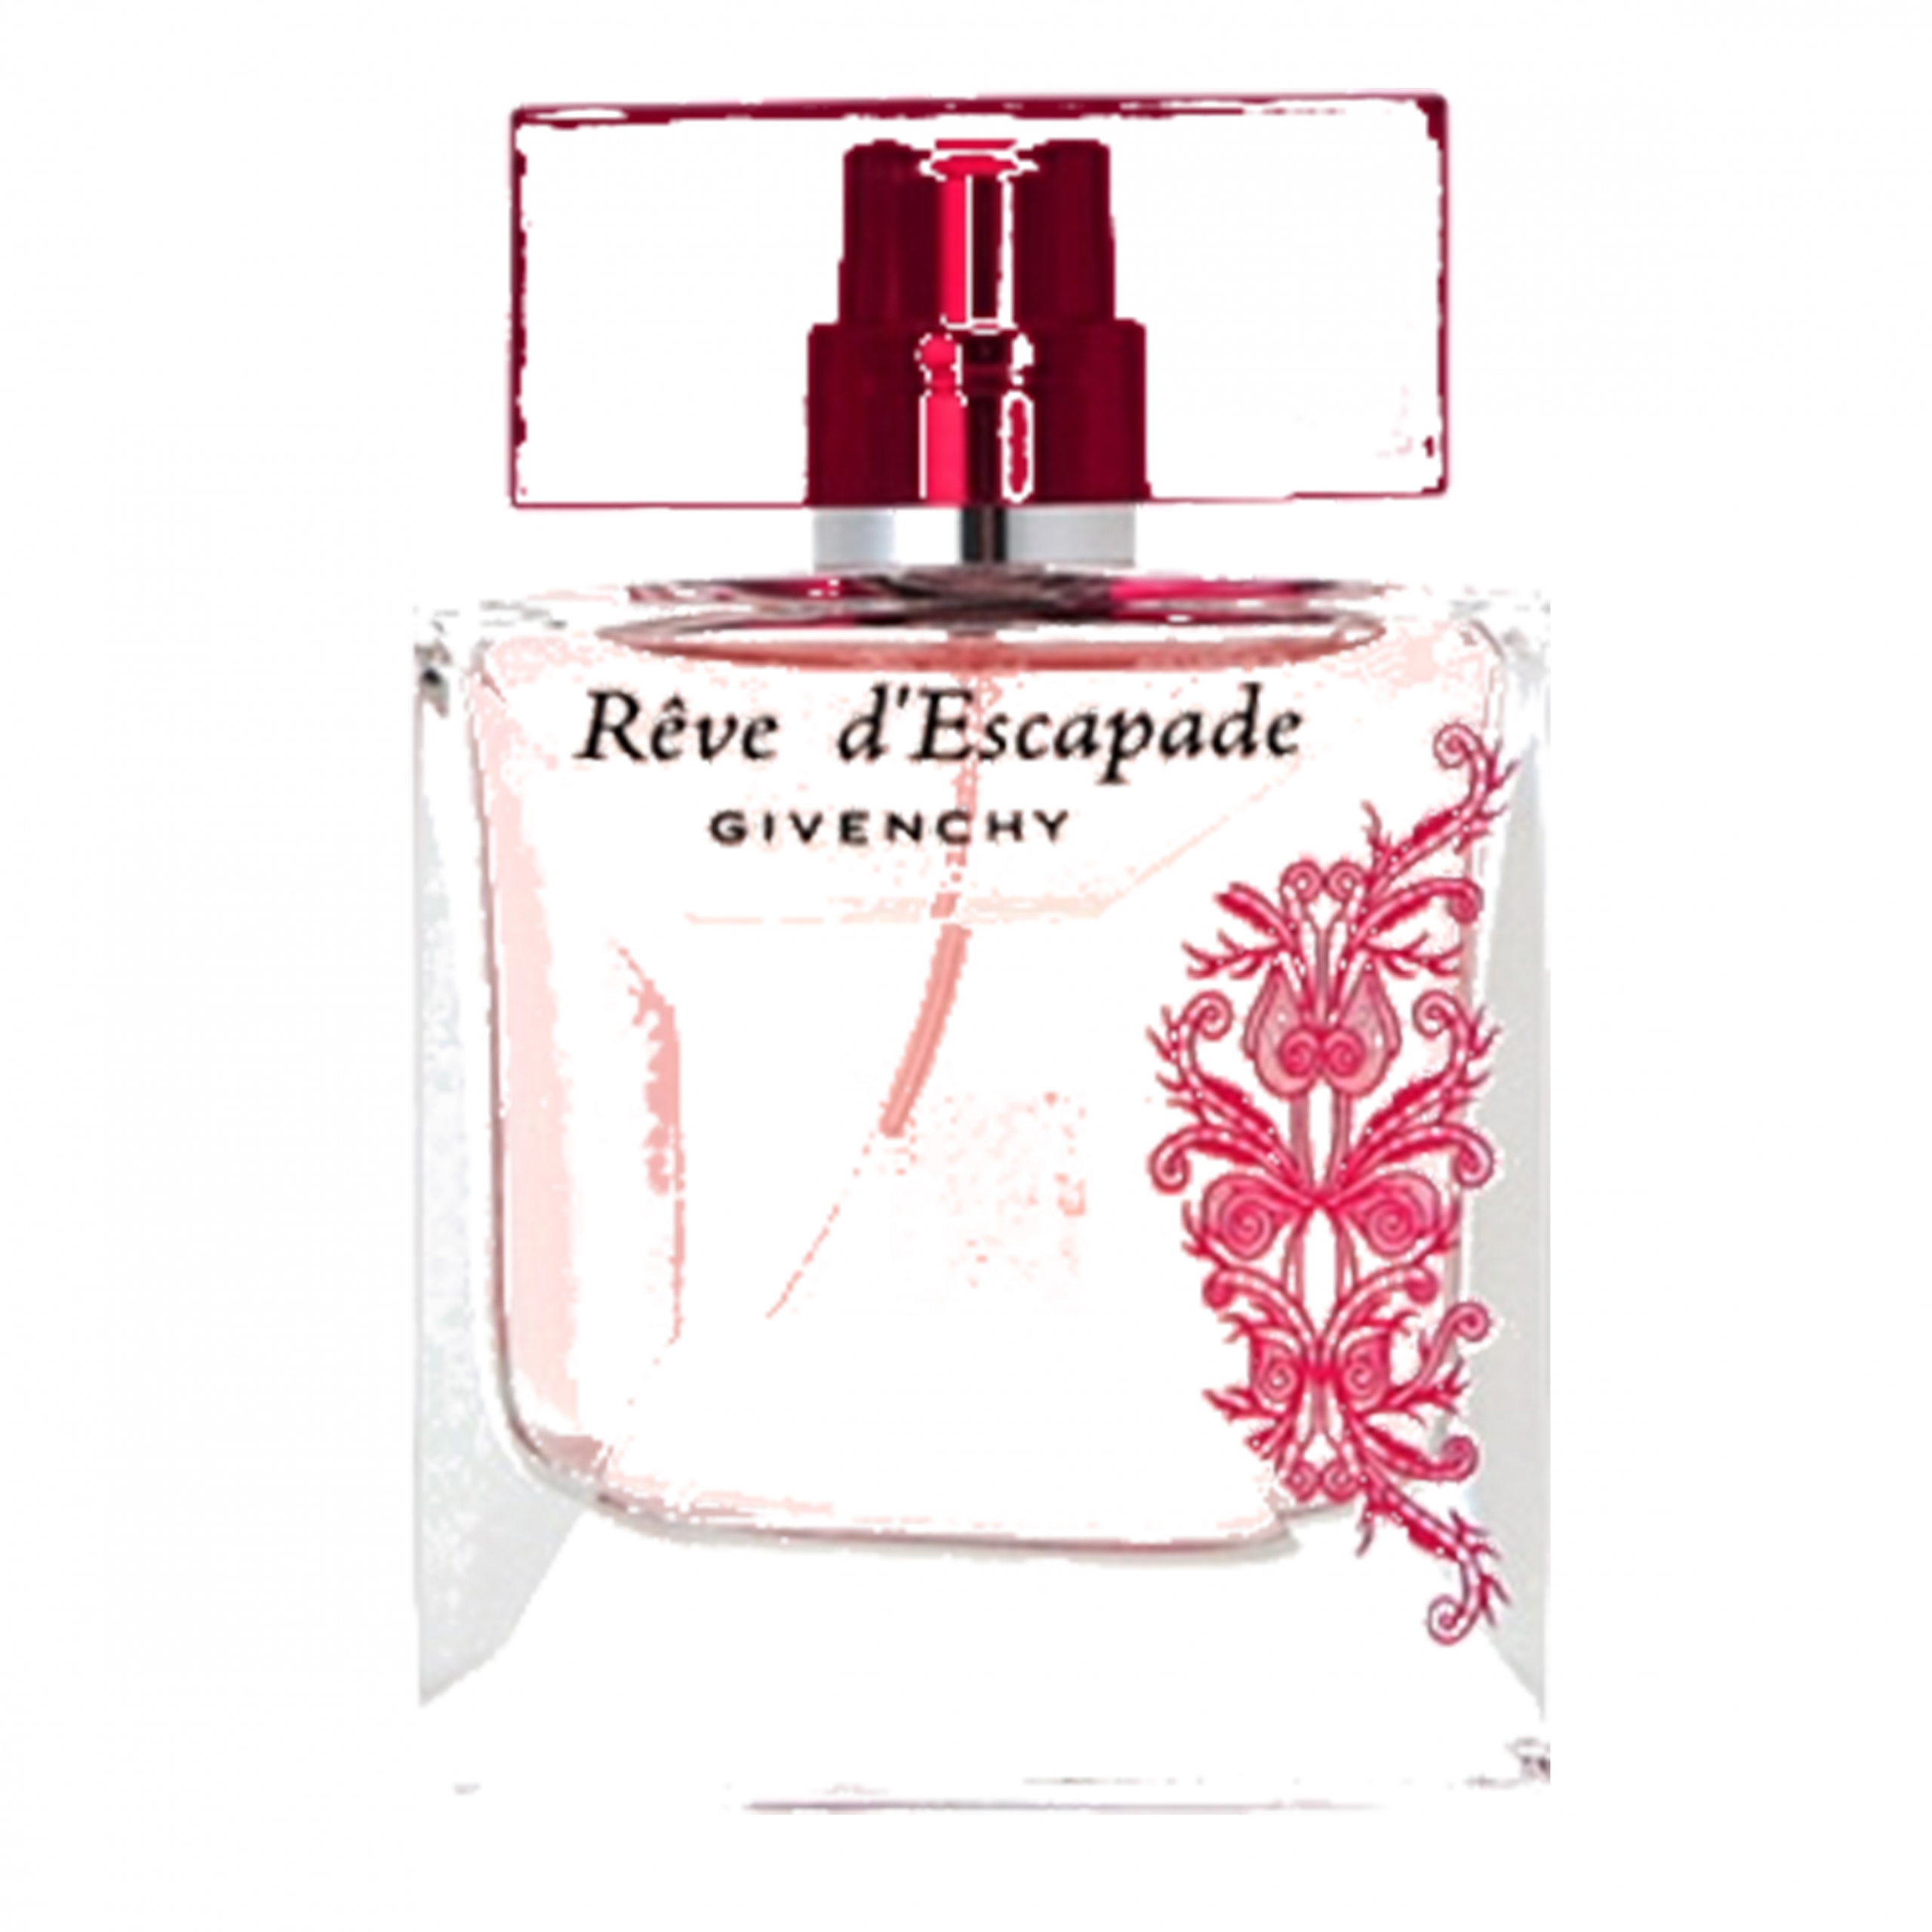 GIVENCHY - REVE D ESCAPADE EDT 50 ML